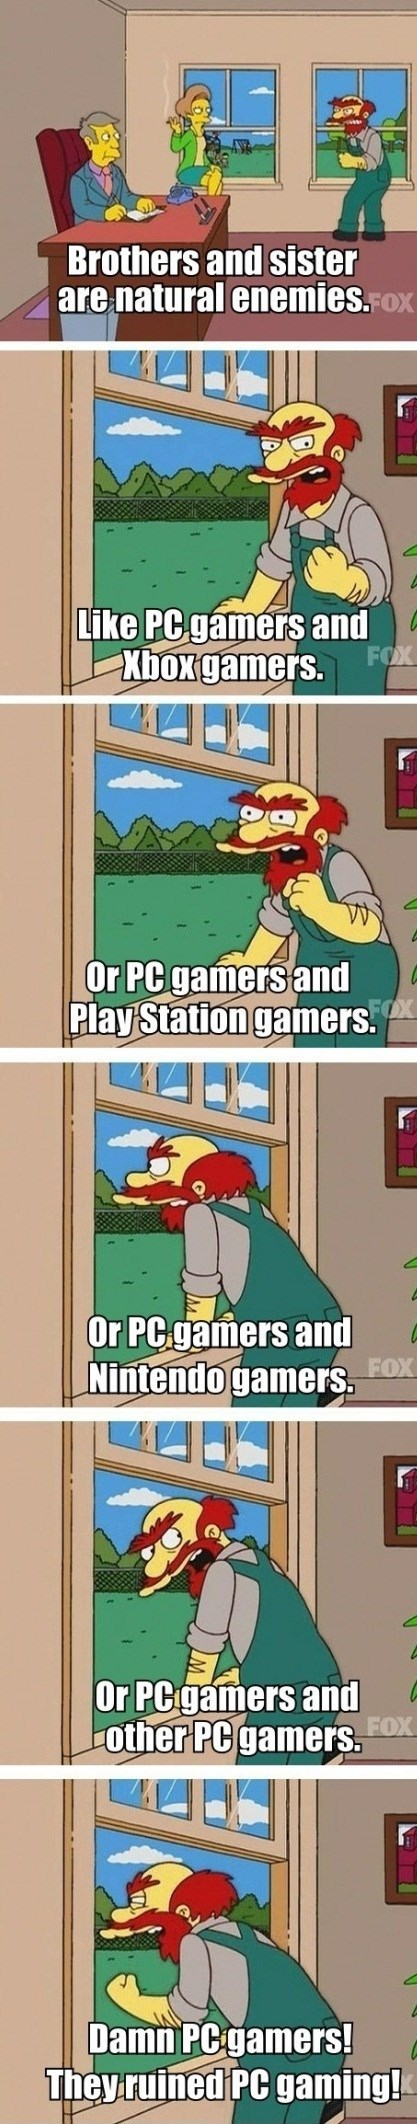 PC ruiner race gamers the simpsons - 7845016576